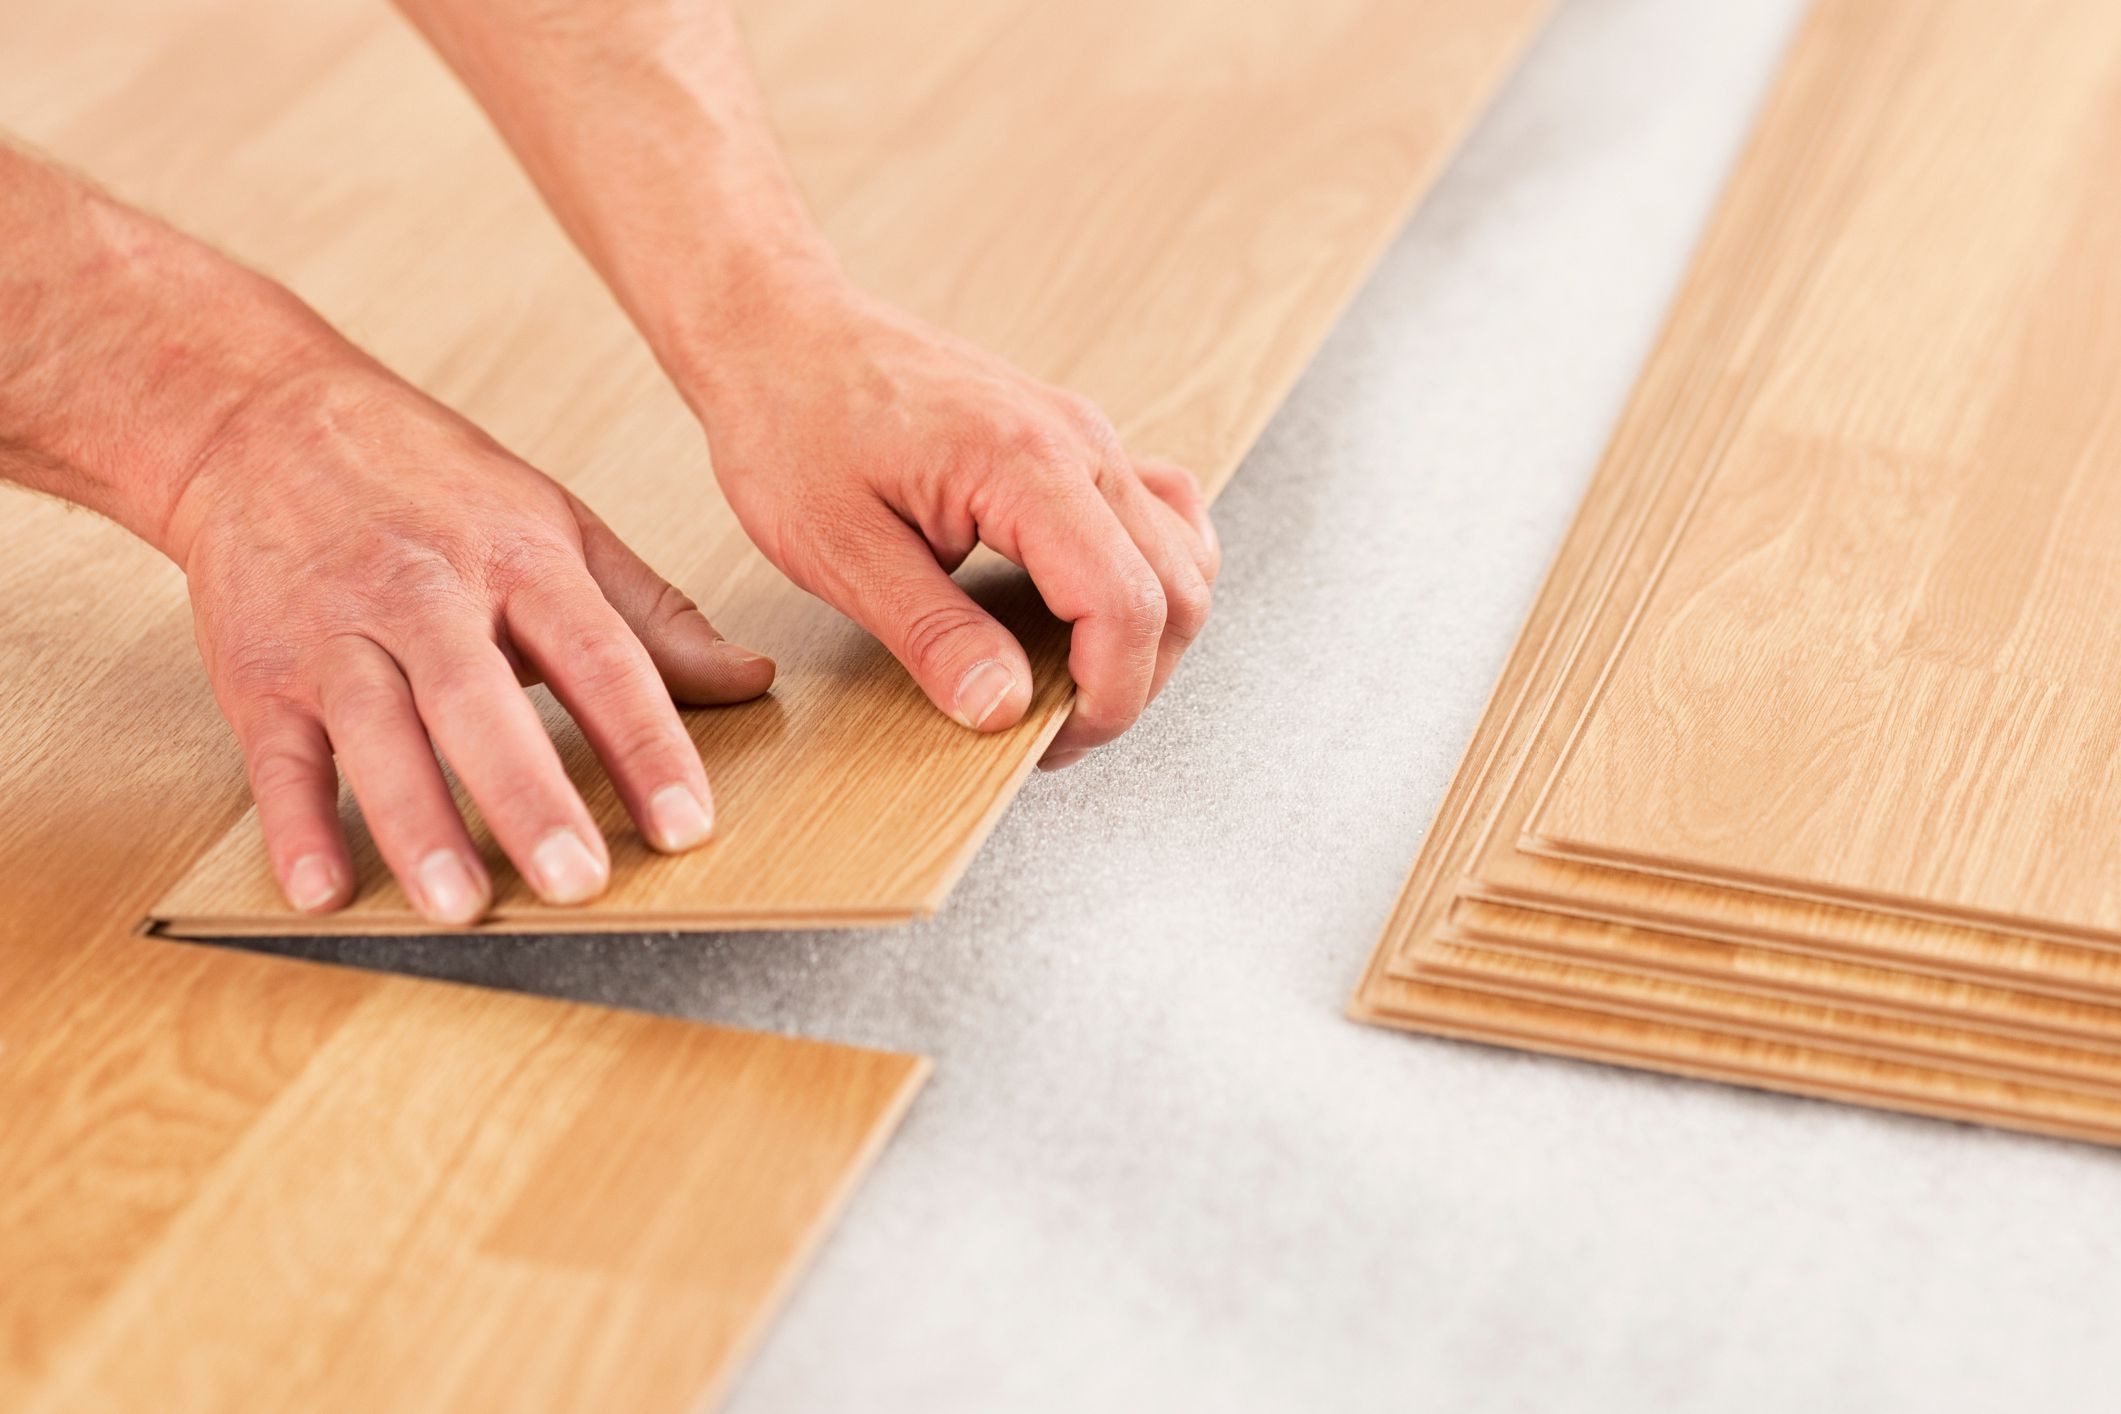 is laminate flooring better than hardwood of laminate underlayment pros and cons within laminate floor install gettyimages 154961561 588816495f9b58bdb3da1a02